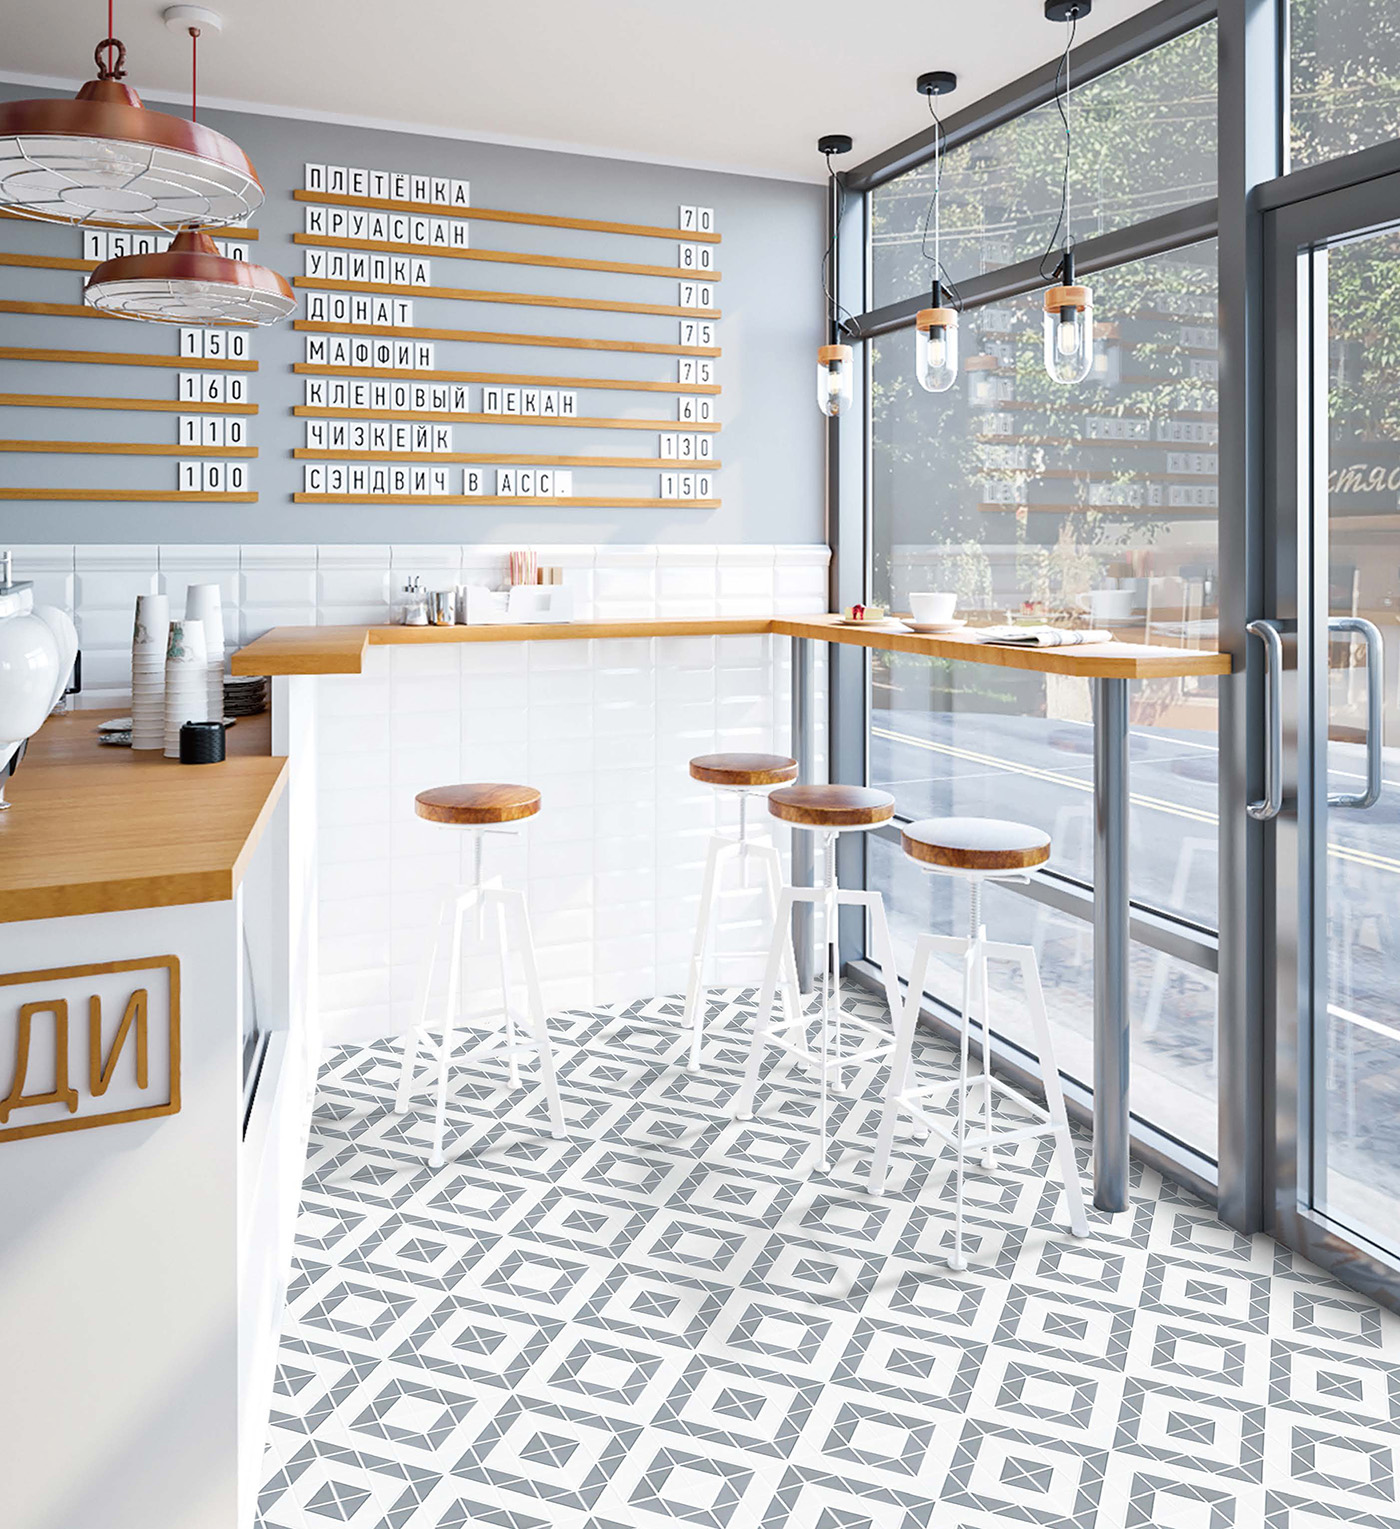 tr2 mwg dd02c_gray white geometric tile cafe shop floor decor